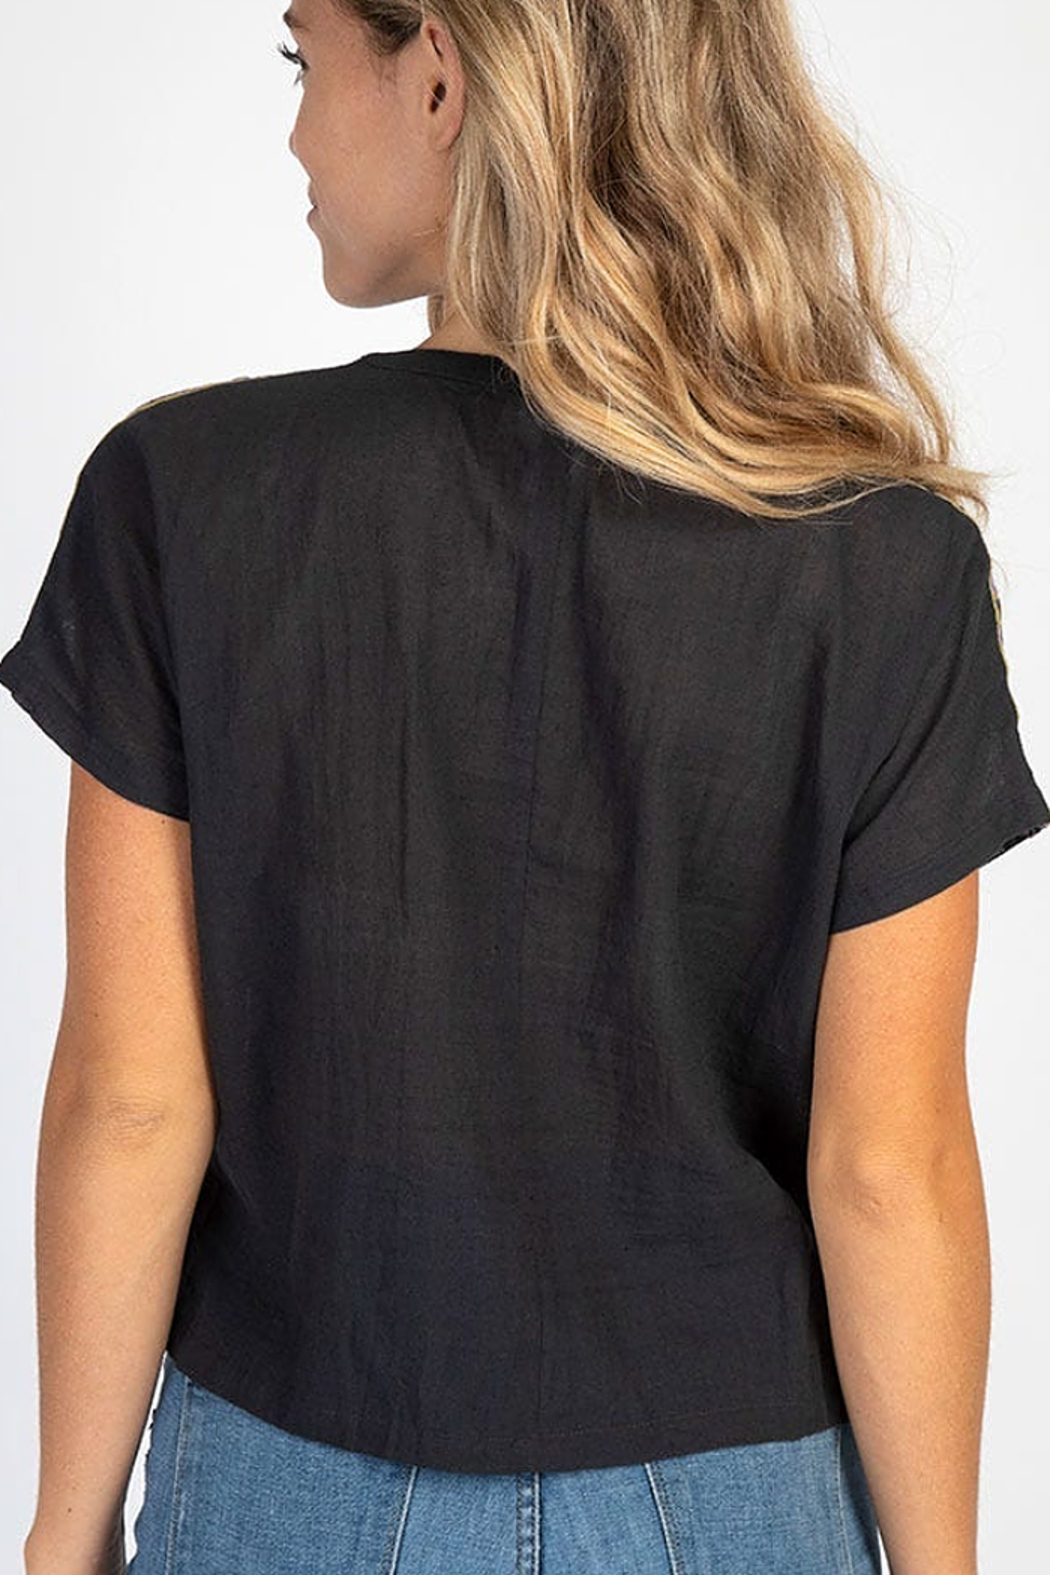 Natural Life Embroidered Cropped Top - Front Full Image